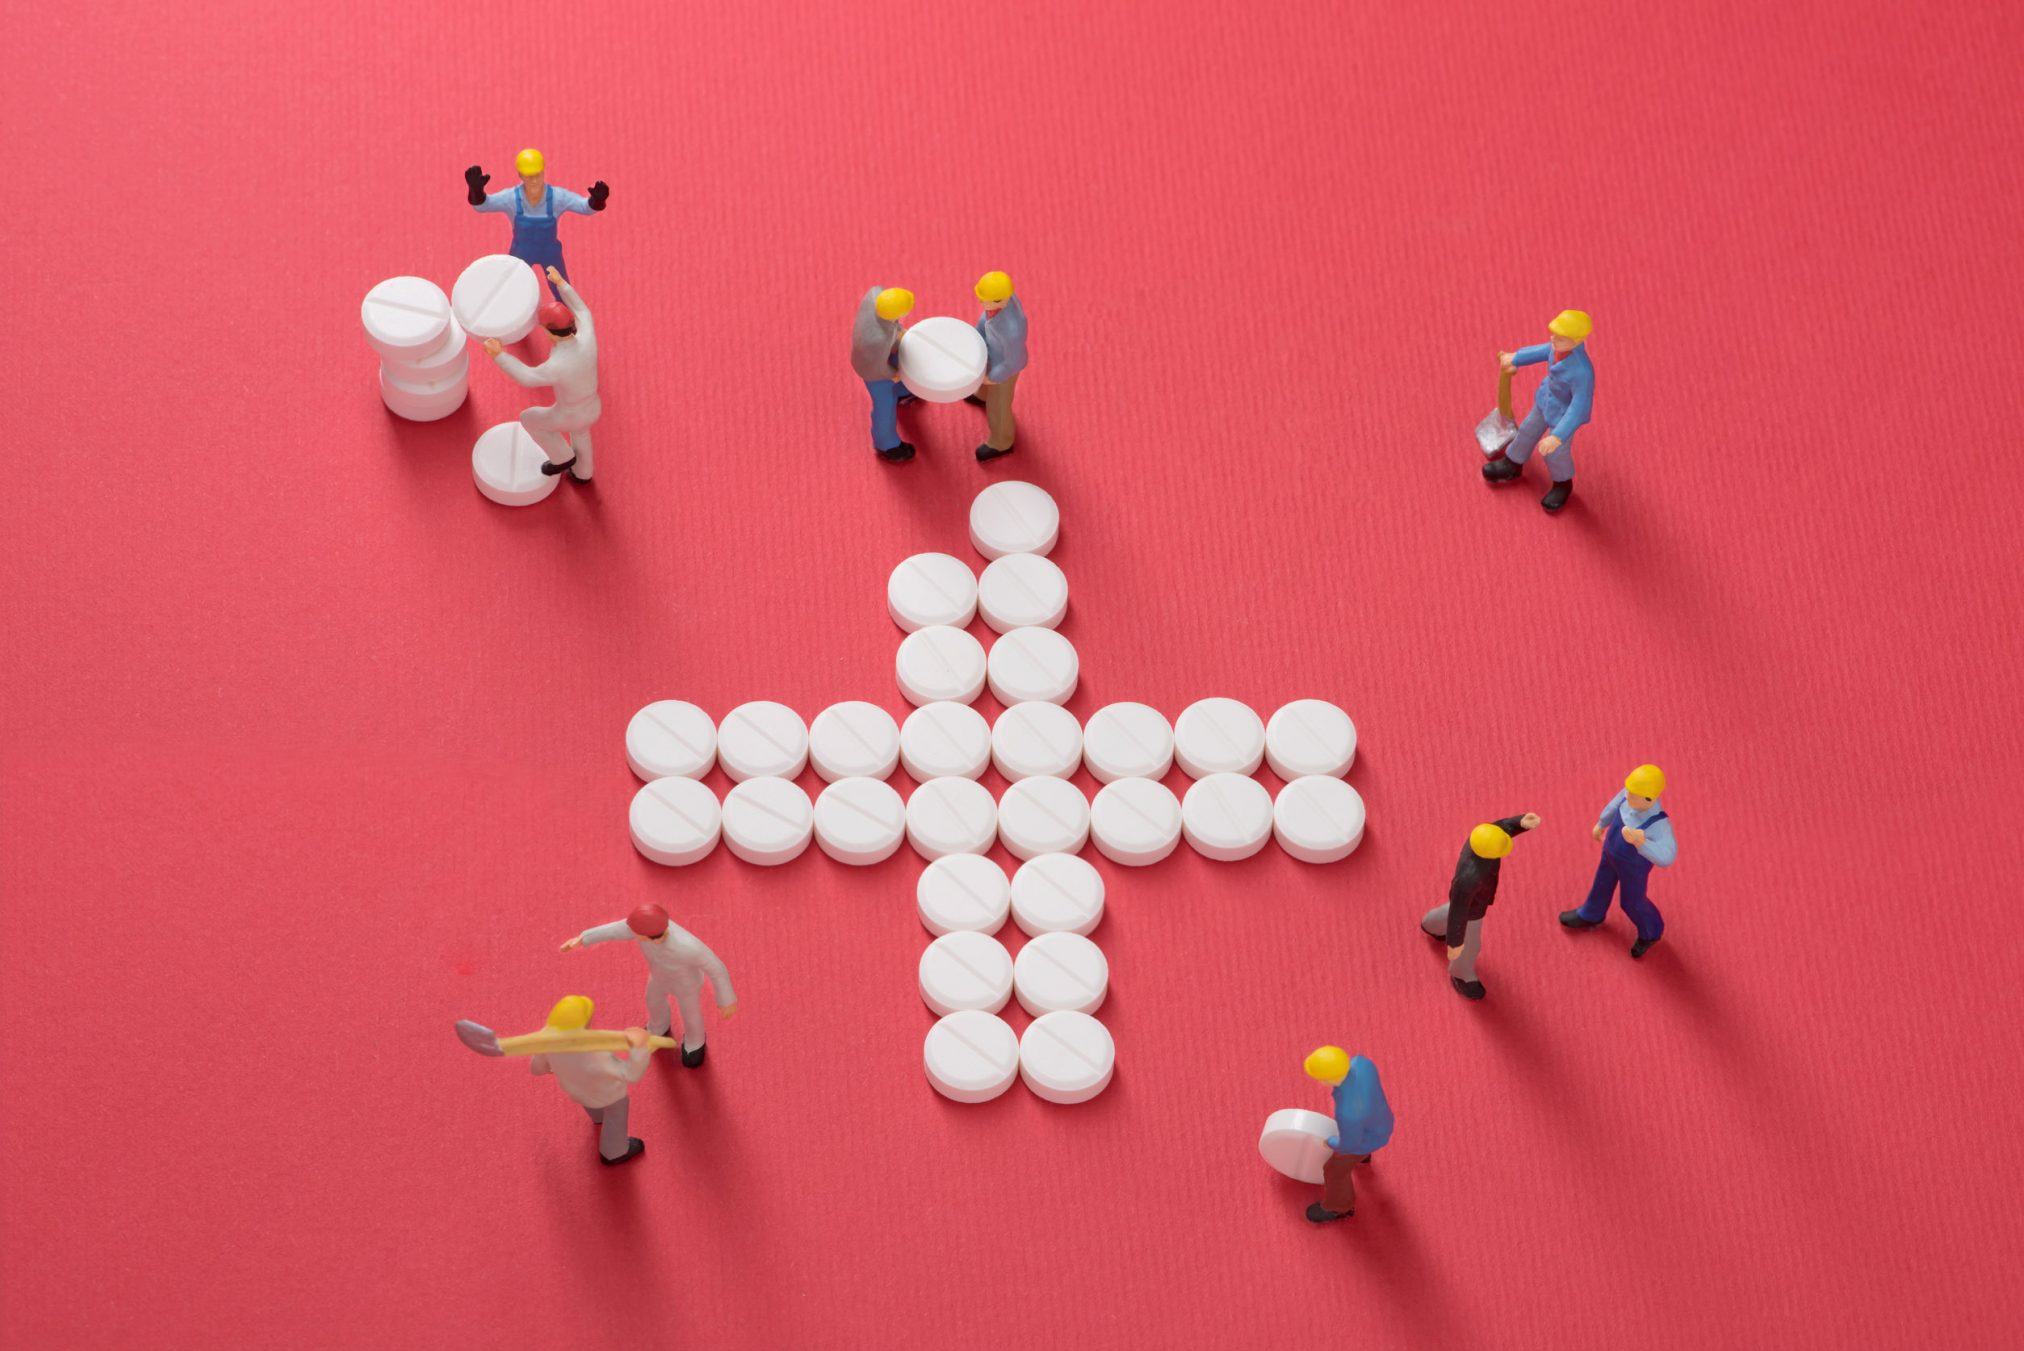 workmen with pills arranged in a cross